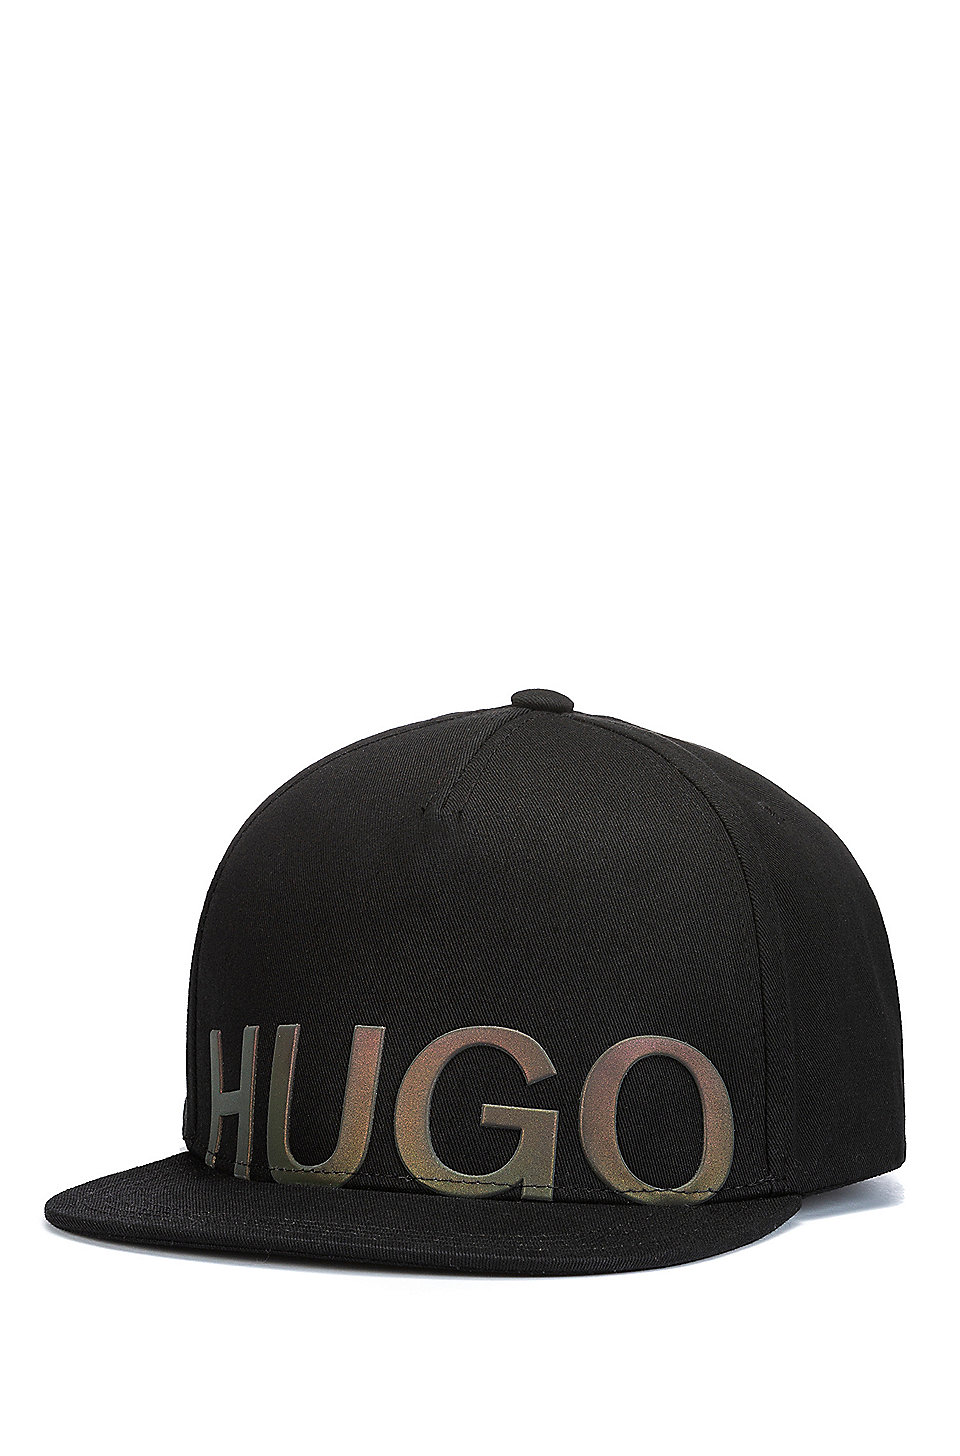 hugo snapback cap aus baumwoll gabardine mit schimmerndem logo. Black Bedroom Furniture Sets. Home Design Ideas